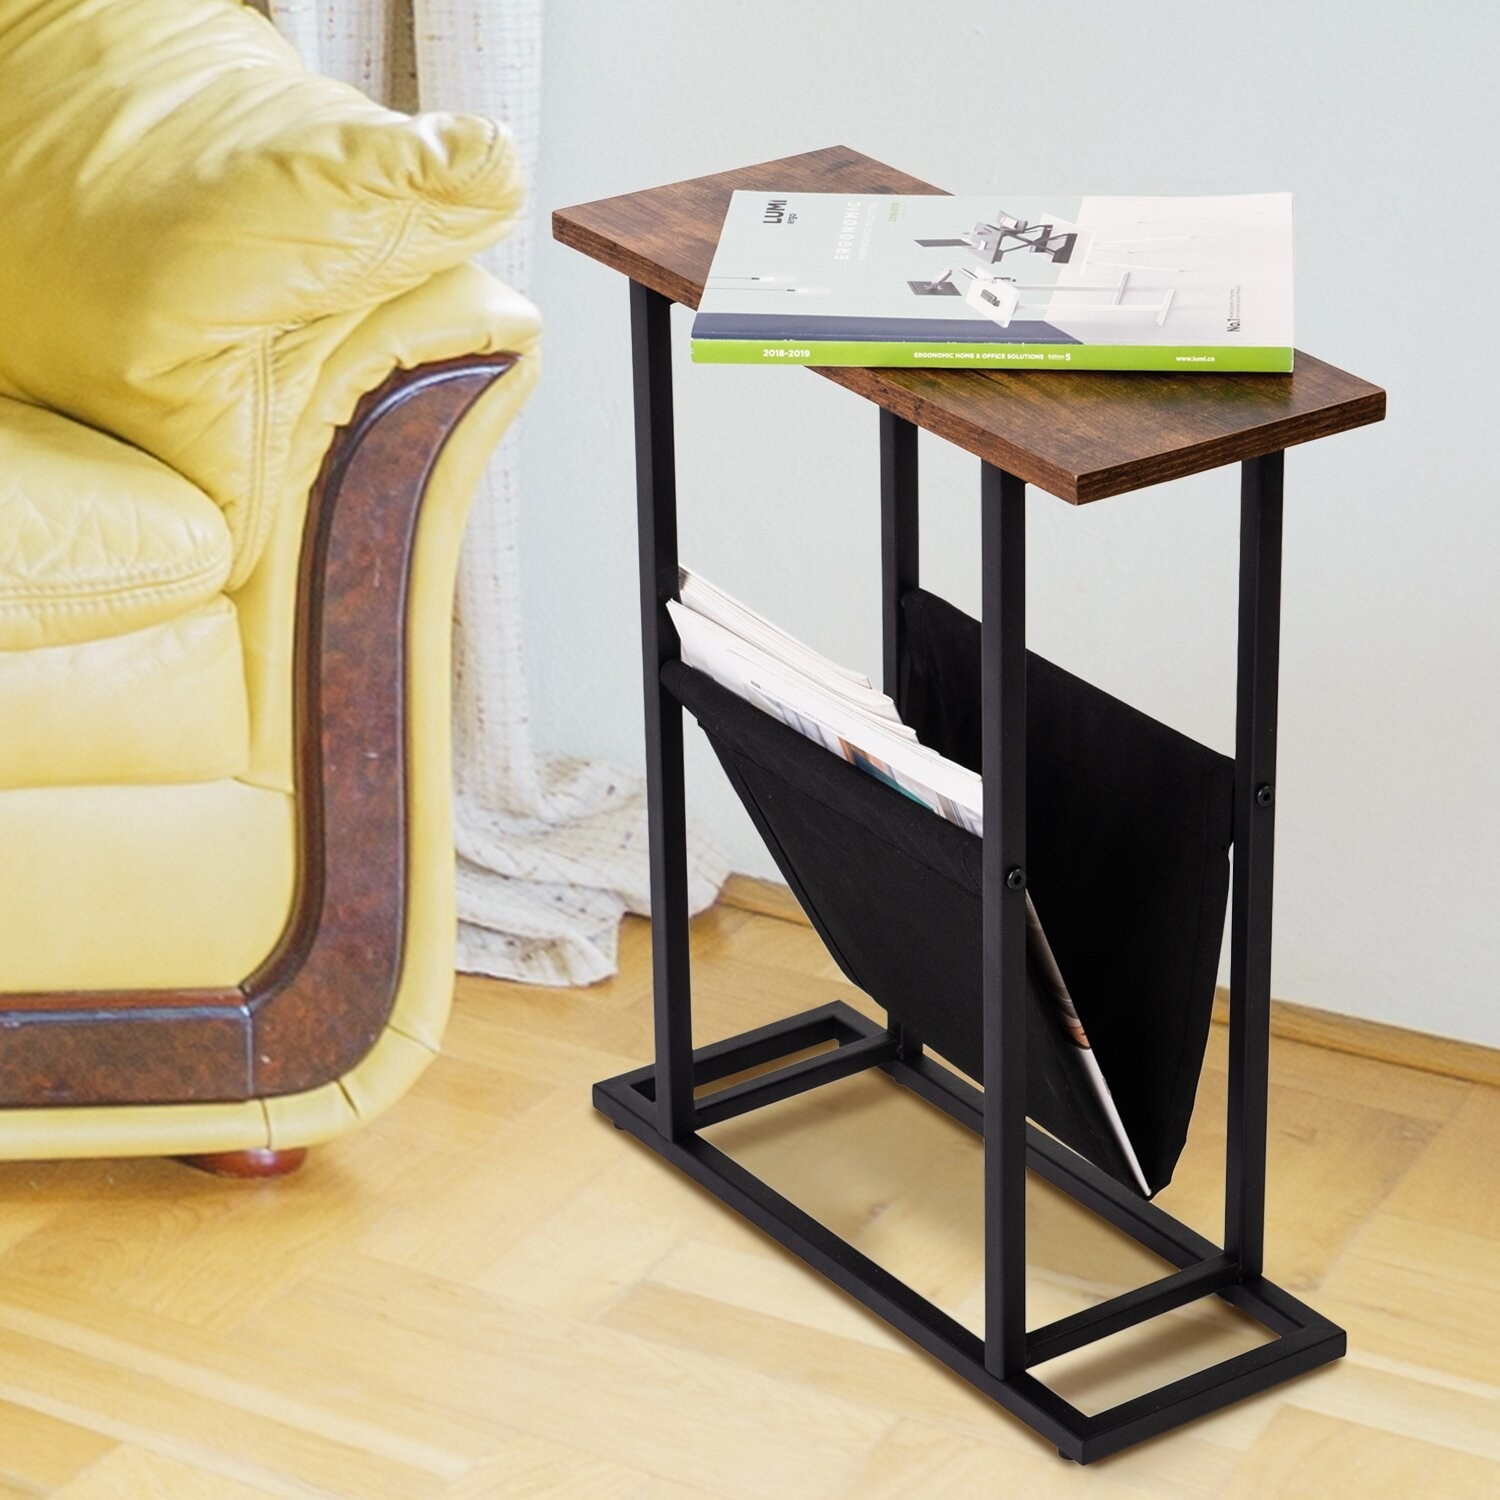 The end table